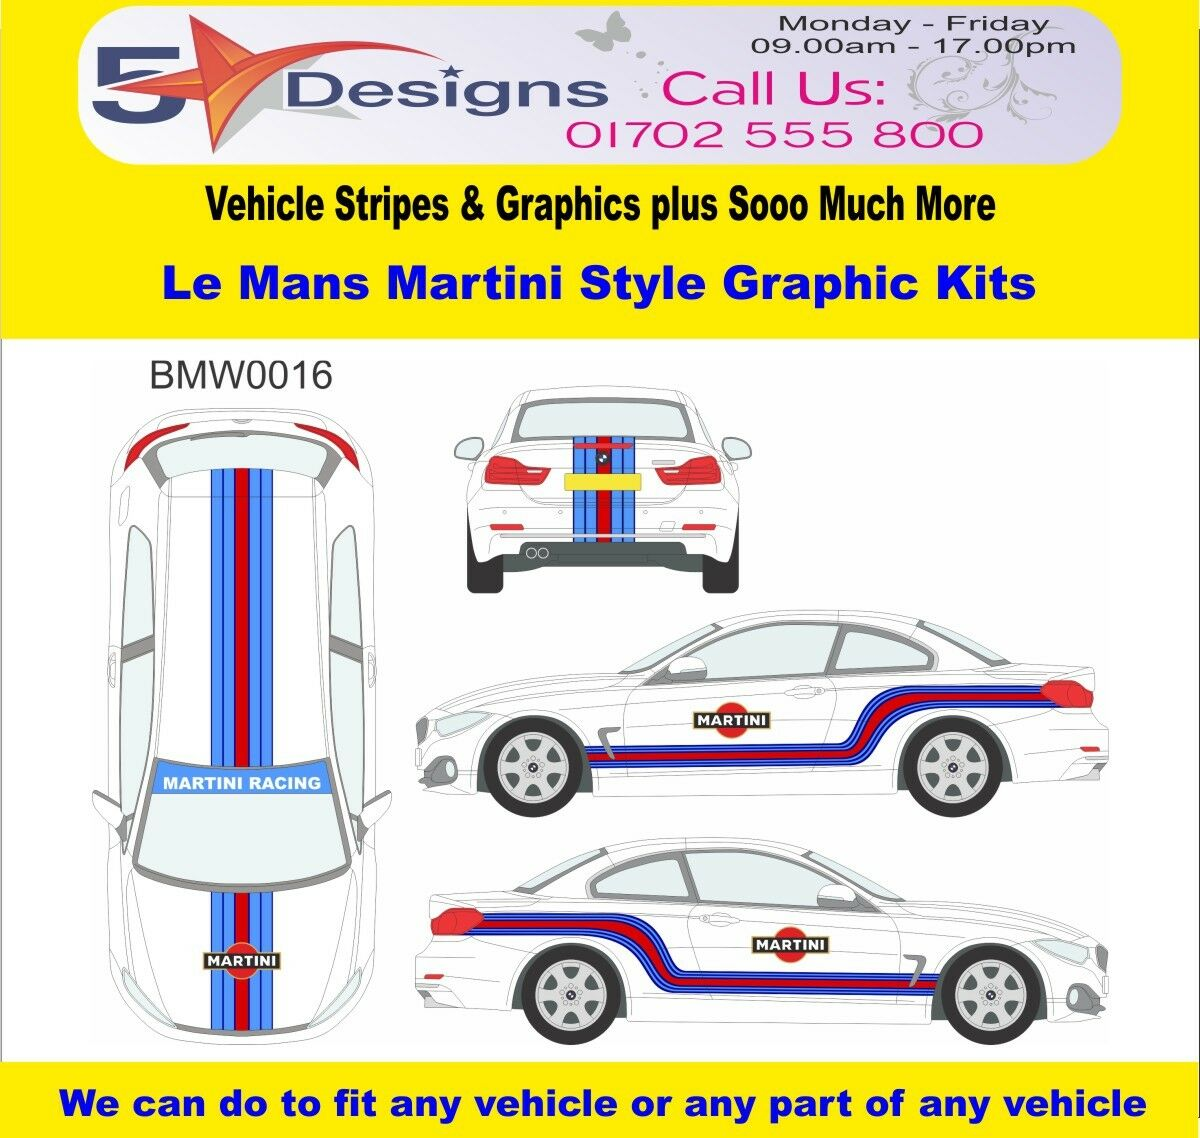 BMW 4 Series Congreenible 2013-14 Le Mans Martini Race Rally Logo Graphic Kit 16